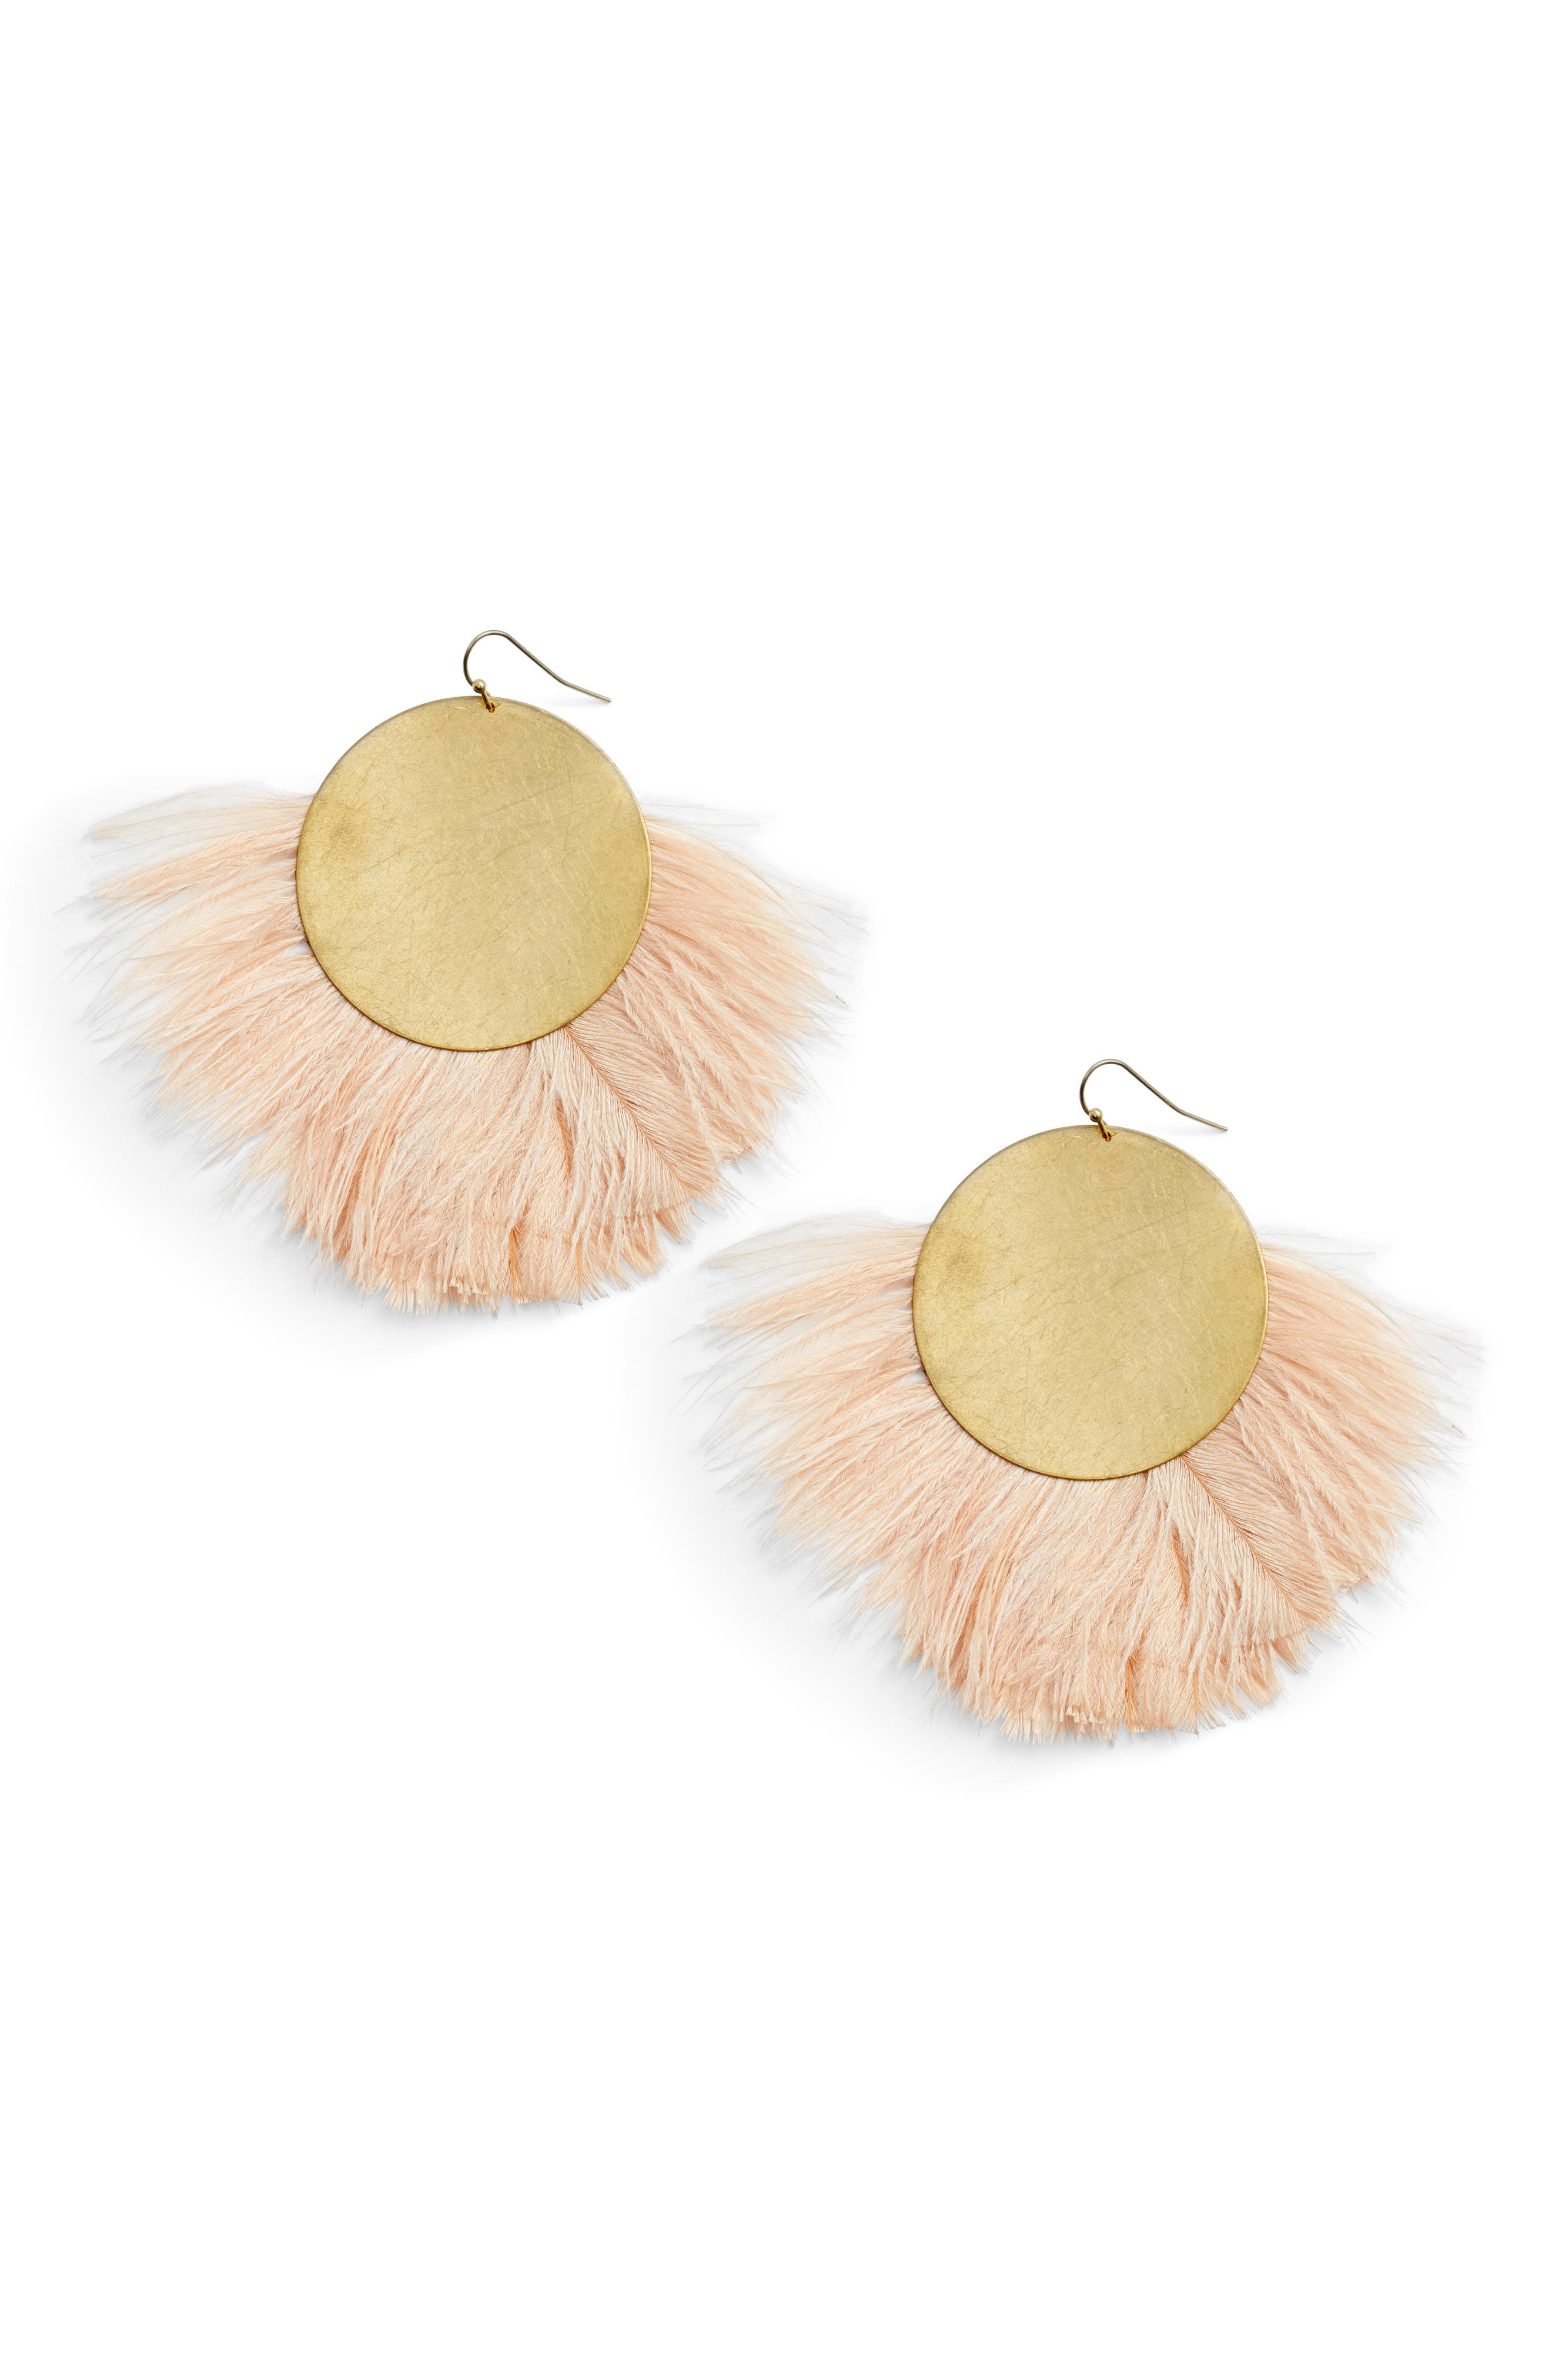 Feather Disc Earrings,                             Main thumbnail 1, color,                             650